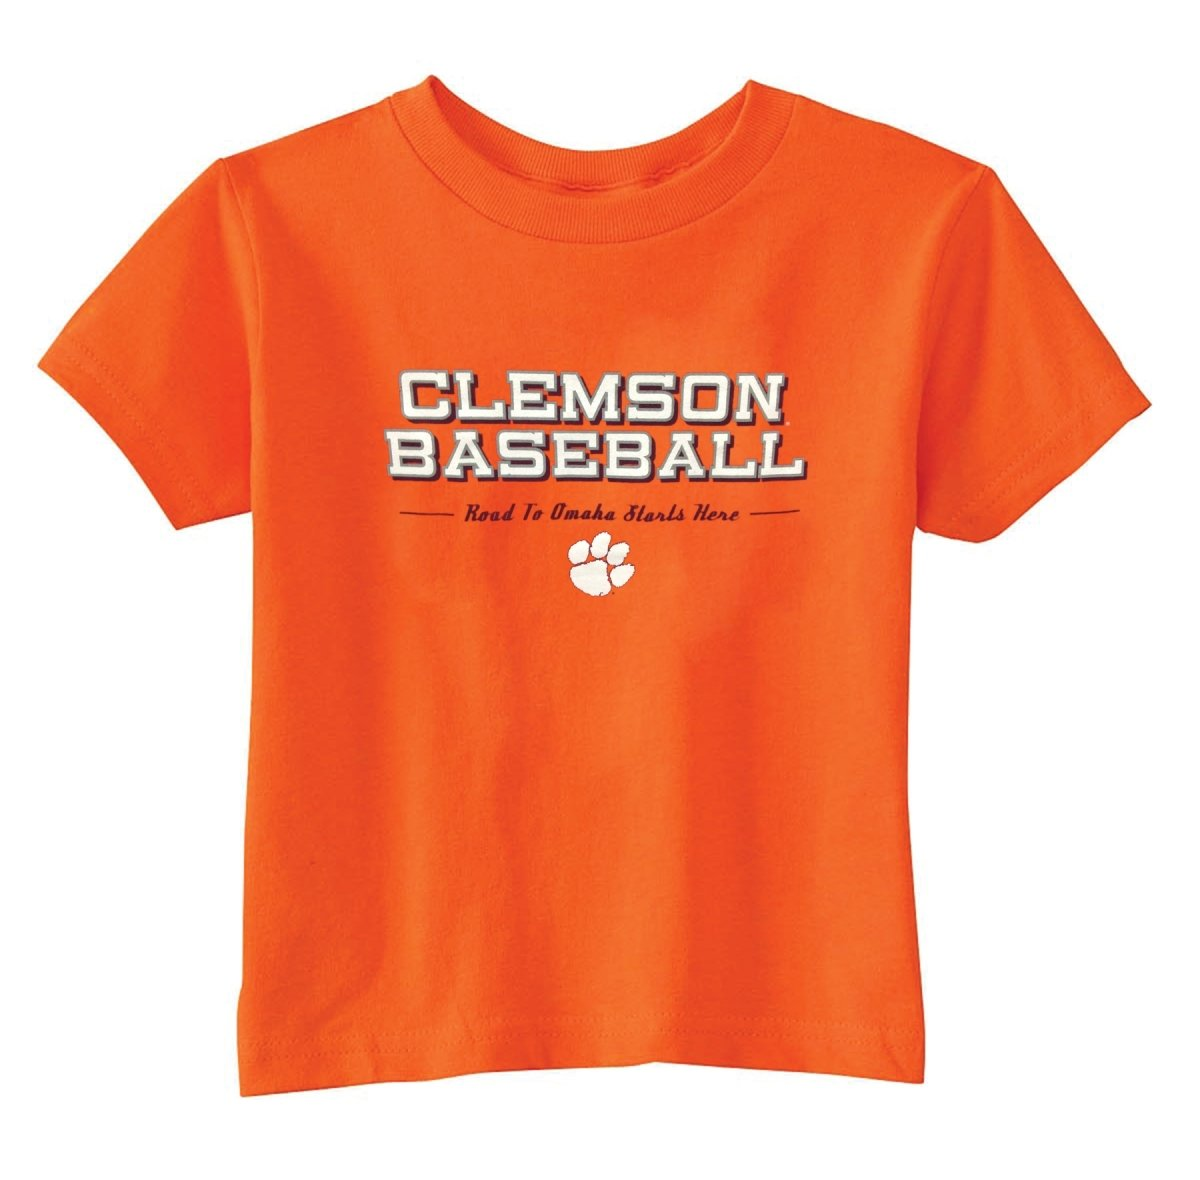 "Viatran Clemson Tigers ""Road to Omaha"" T-shirt - Mr. Knickerbocker"